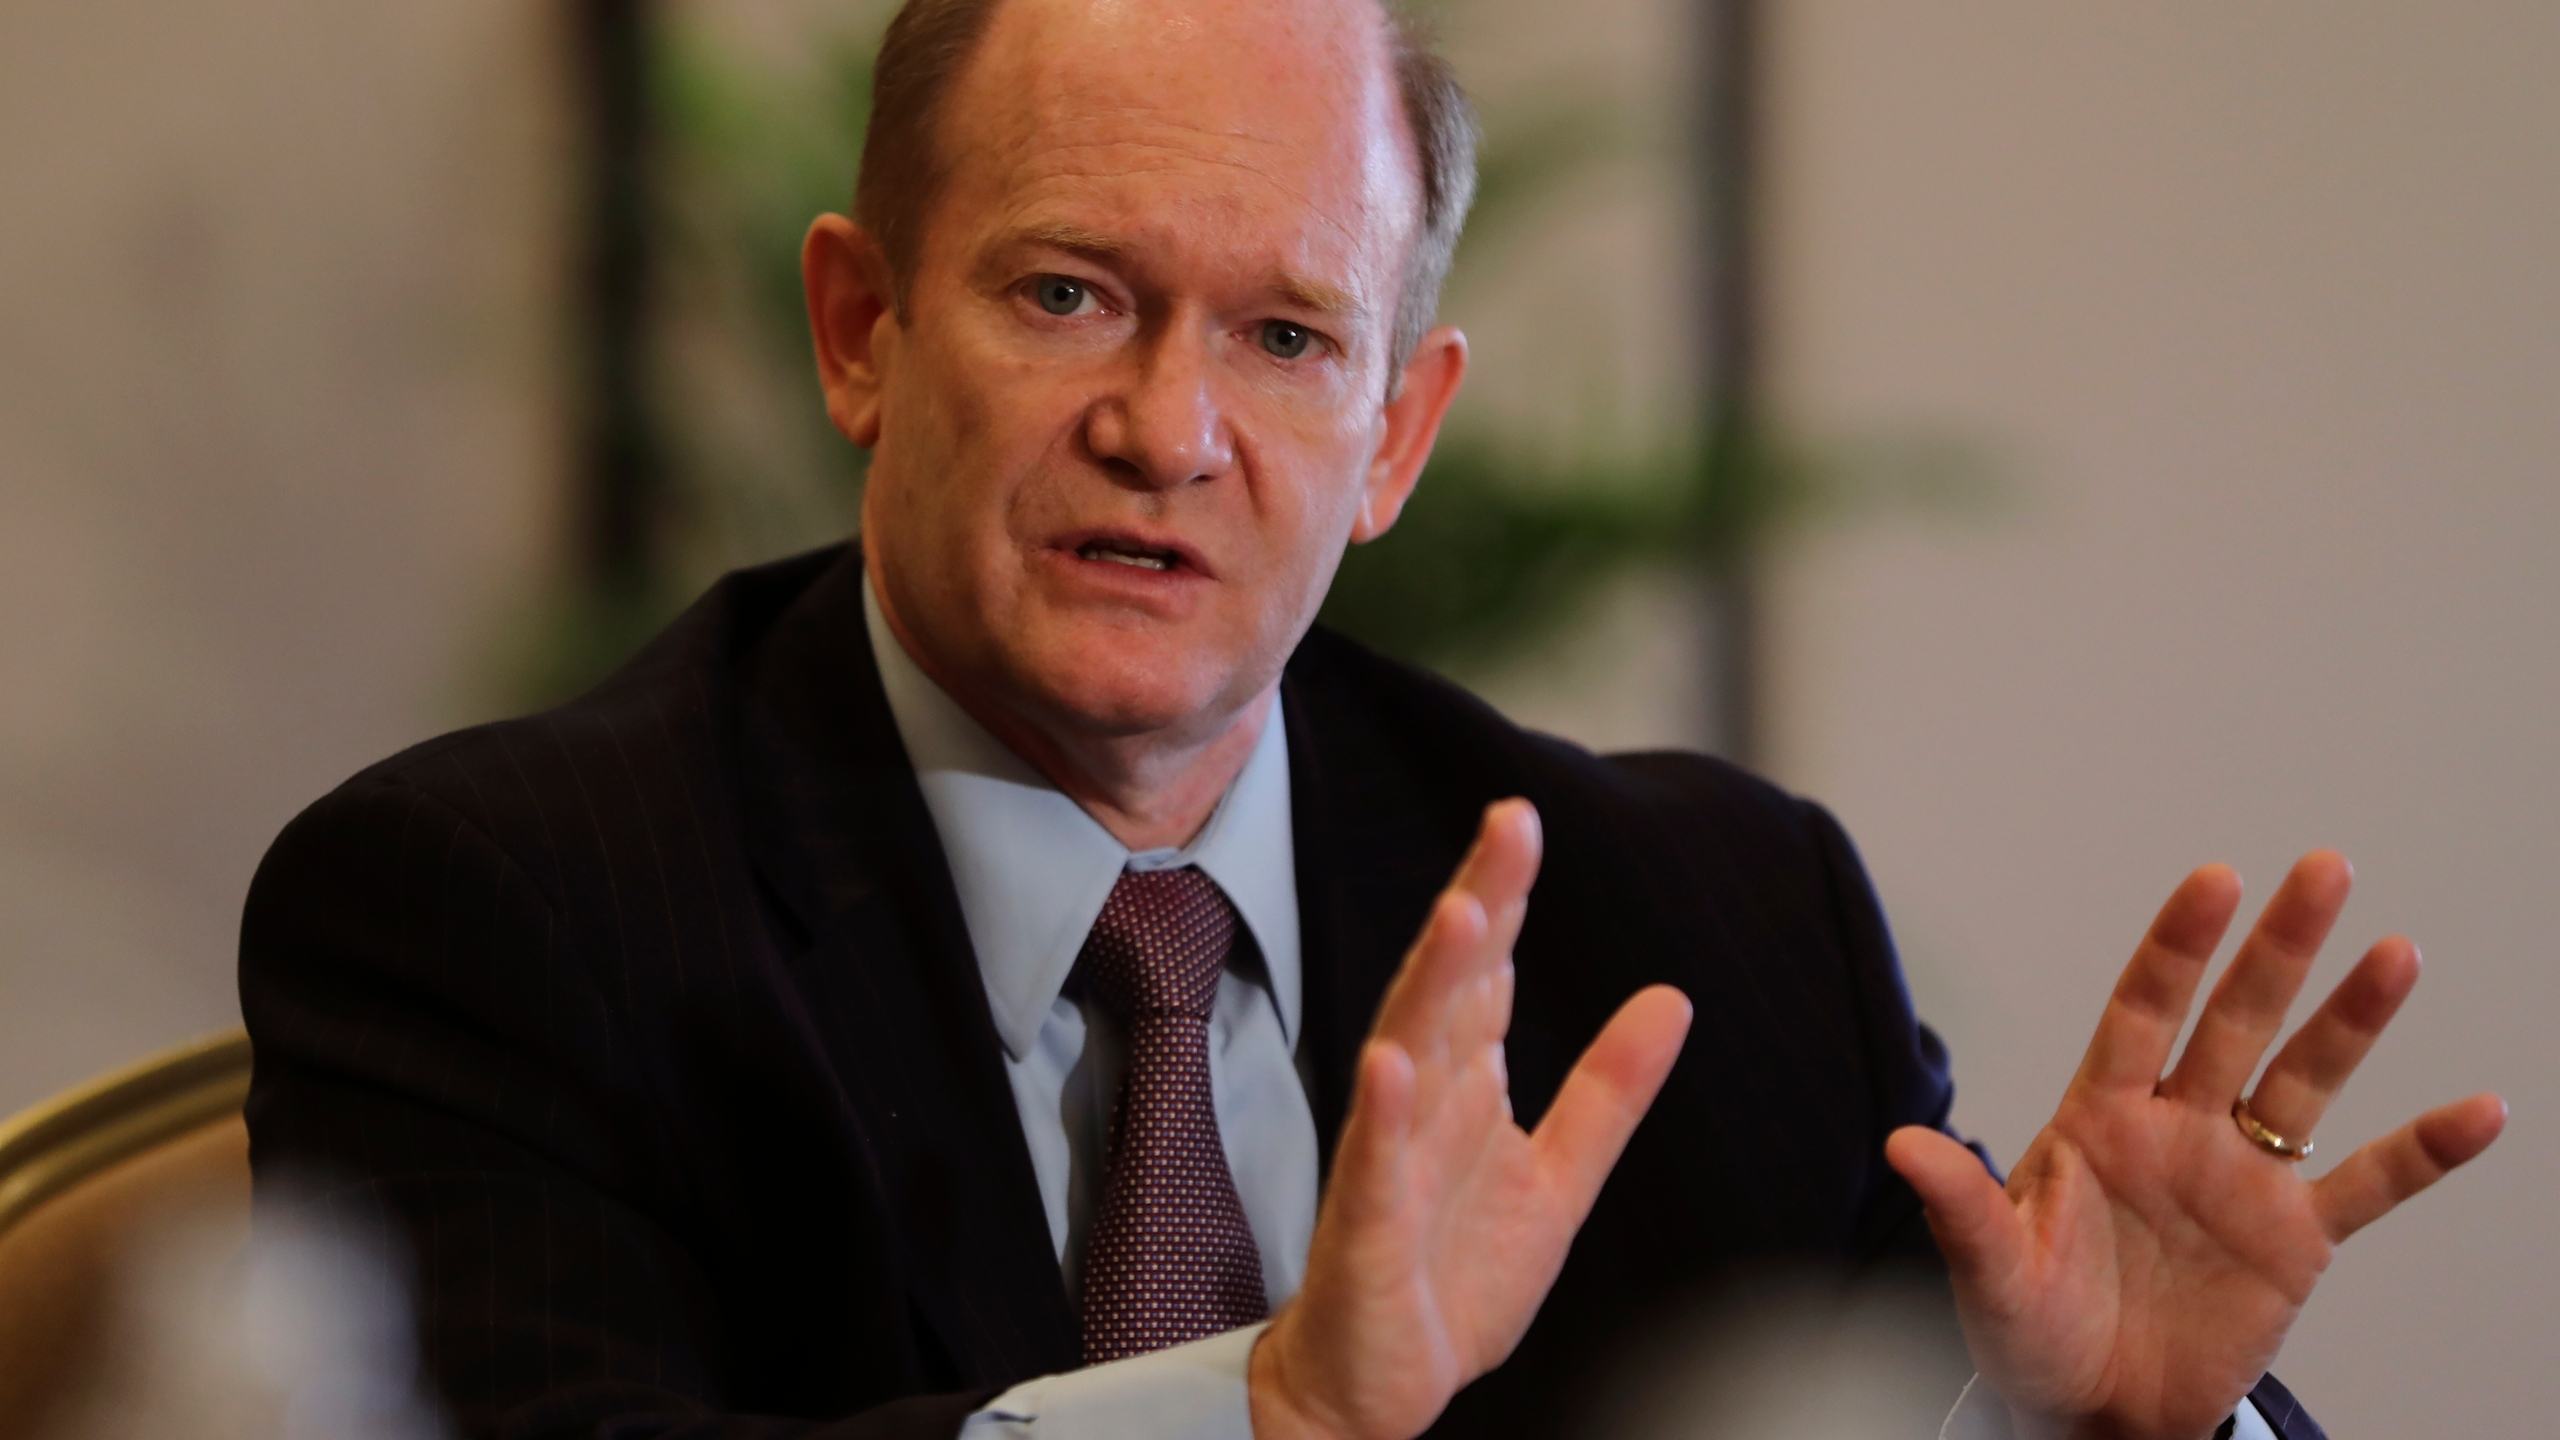 Chris Coons